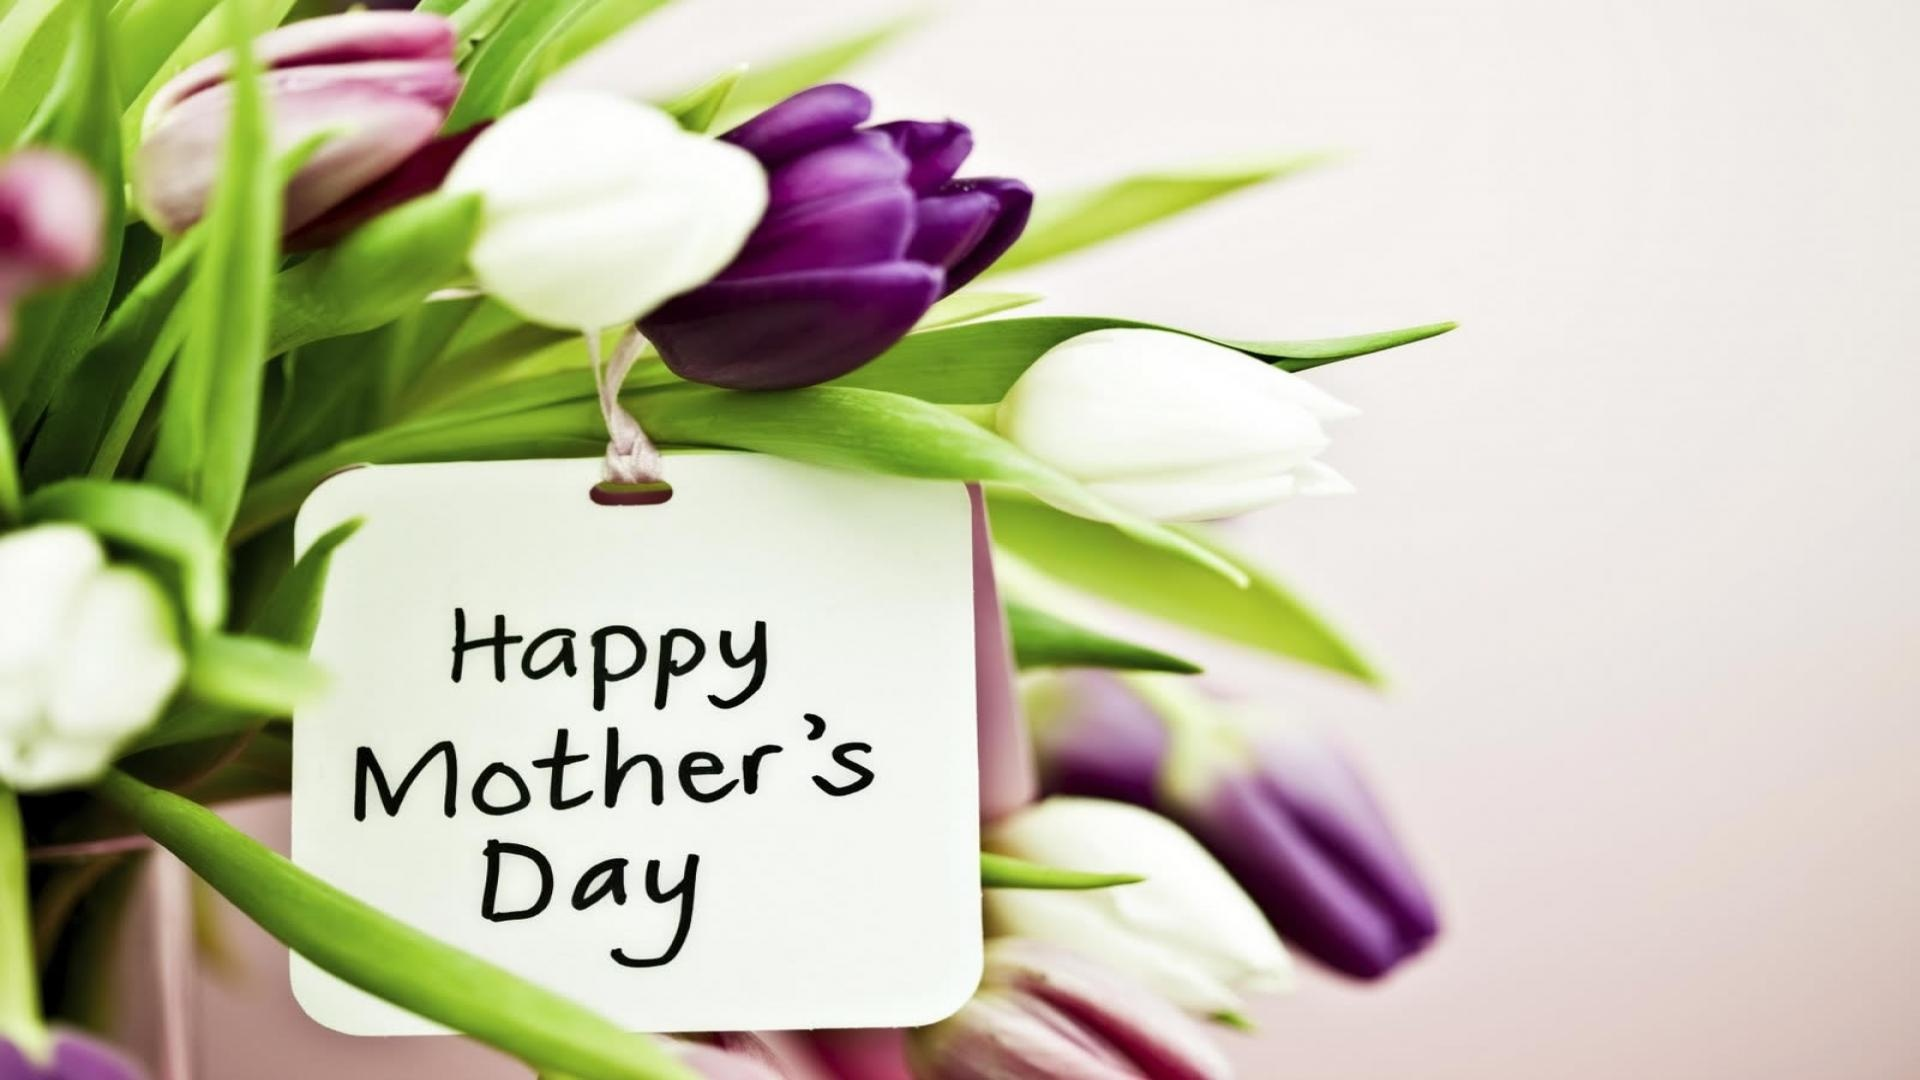 Mothers Day Desktop Wallpapers   Wallpaper High Definition High 1920x1080